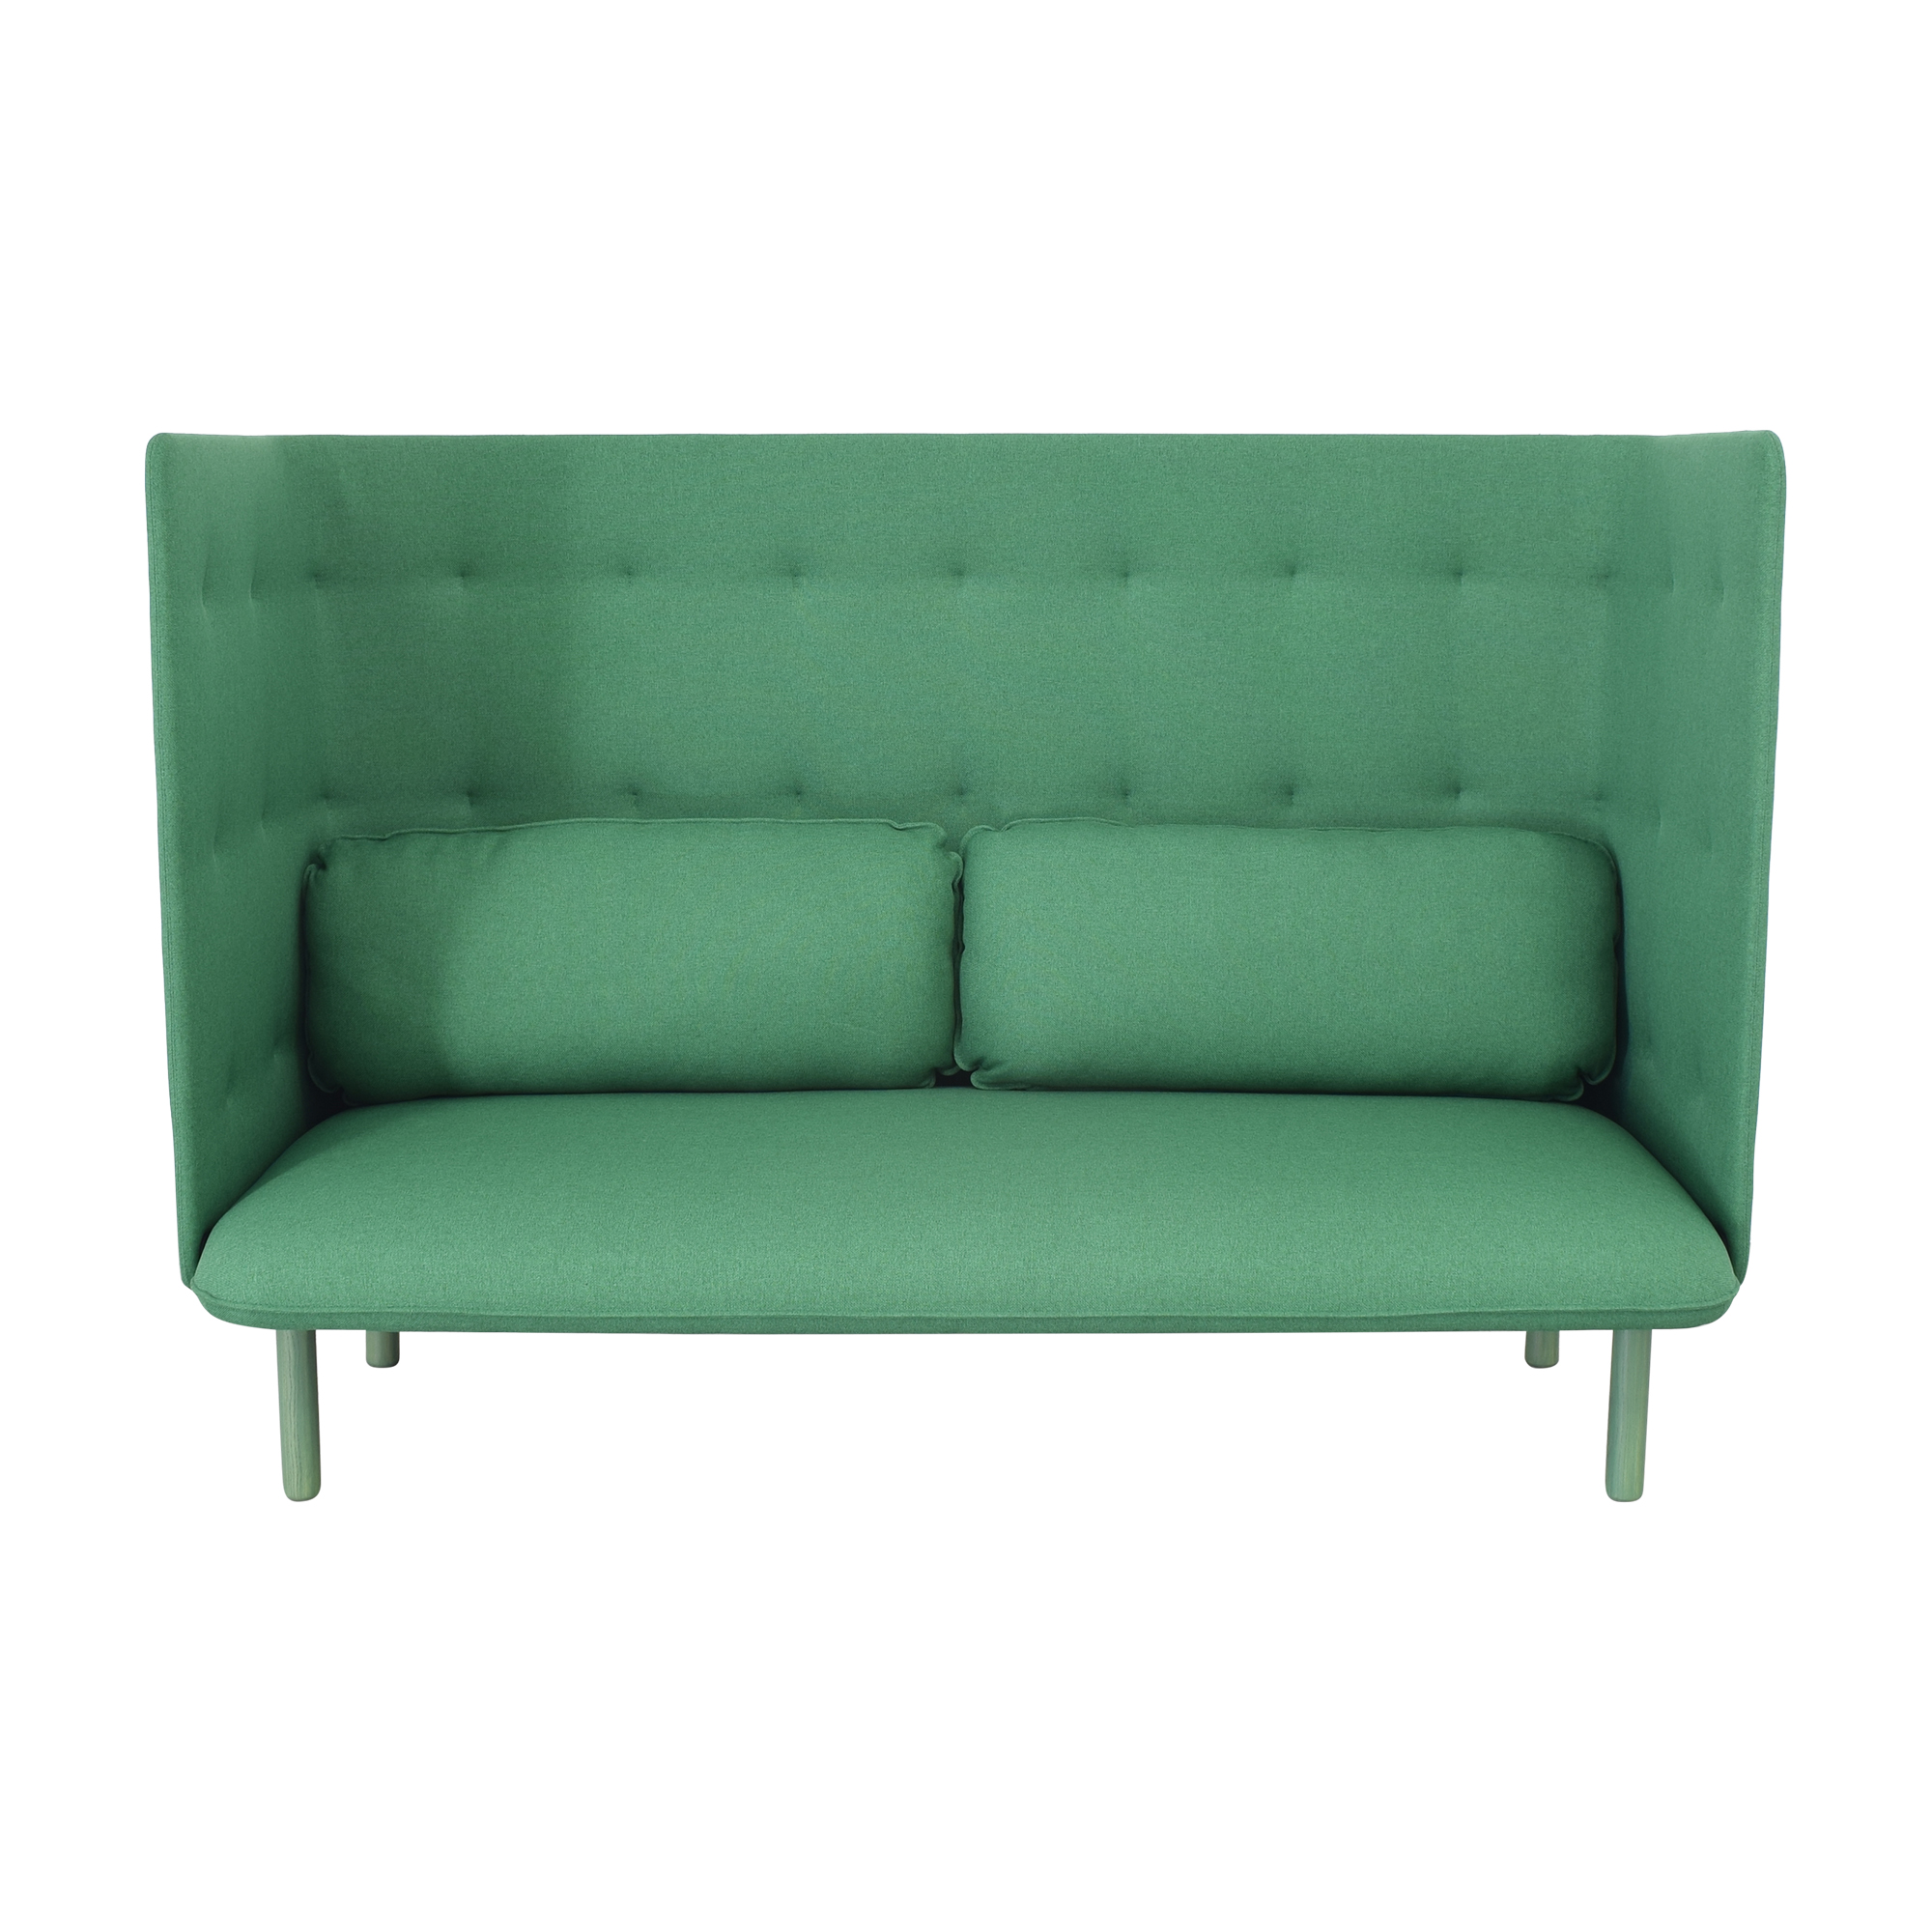 Poppin Poppin The Quiet Time QT Lounge Sofa on sale